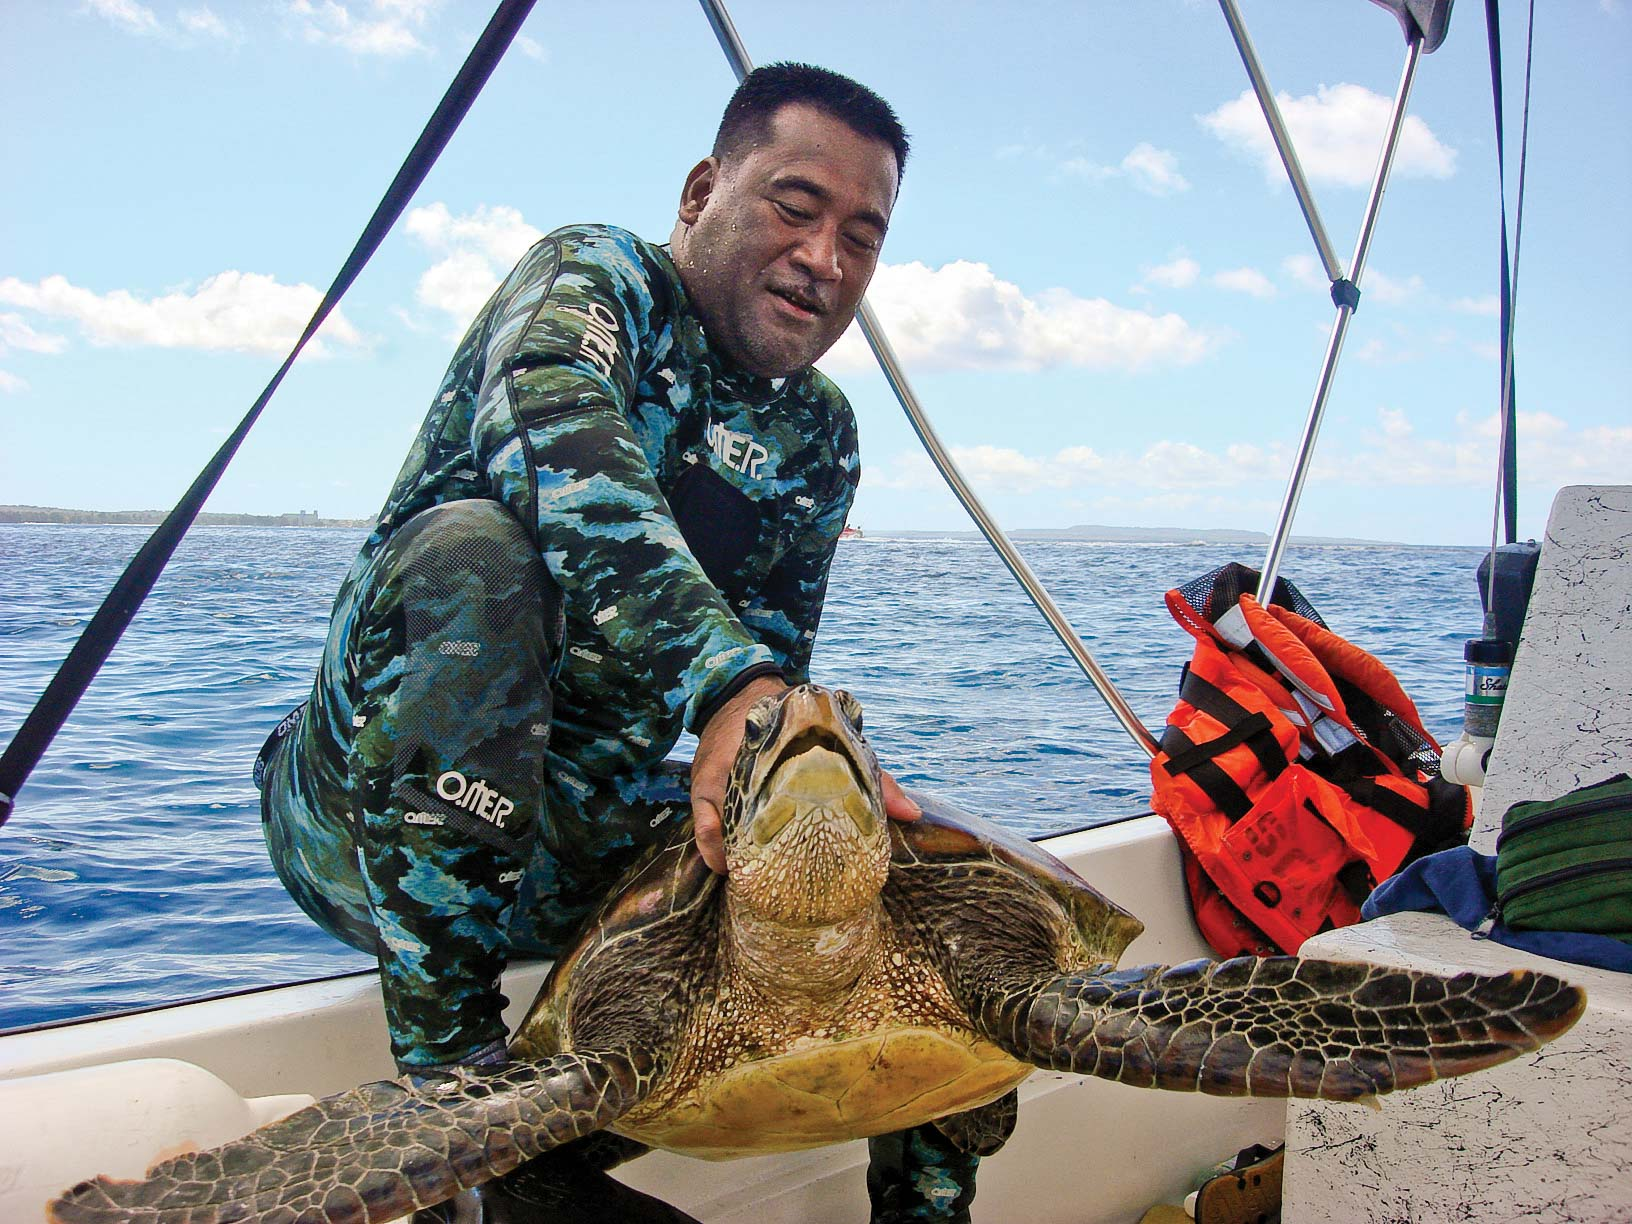 Jessy grew up catching turtles in Micronesia, where they are a traditional food source for his community. Today, he is putting his skills to use by catching turtles for research. © Christopher Alepuyo